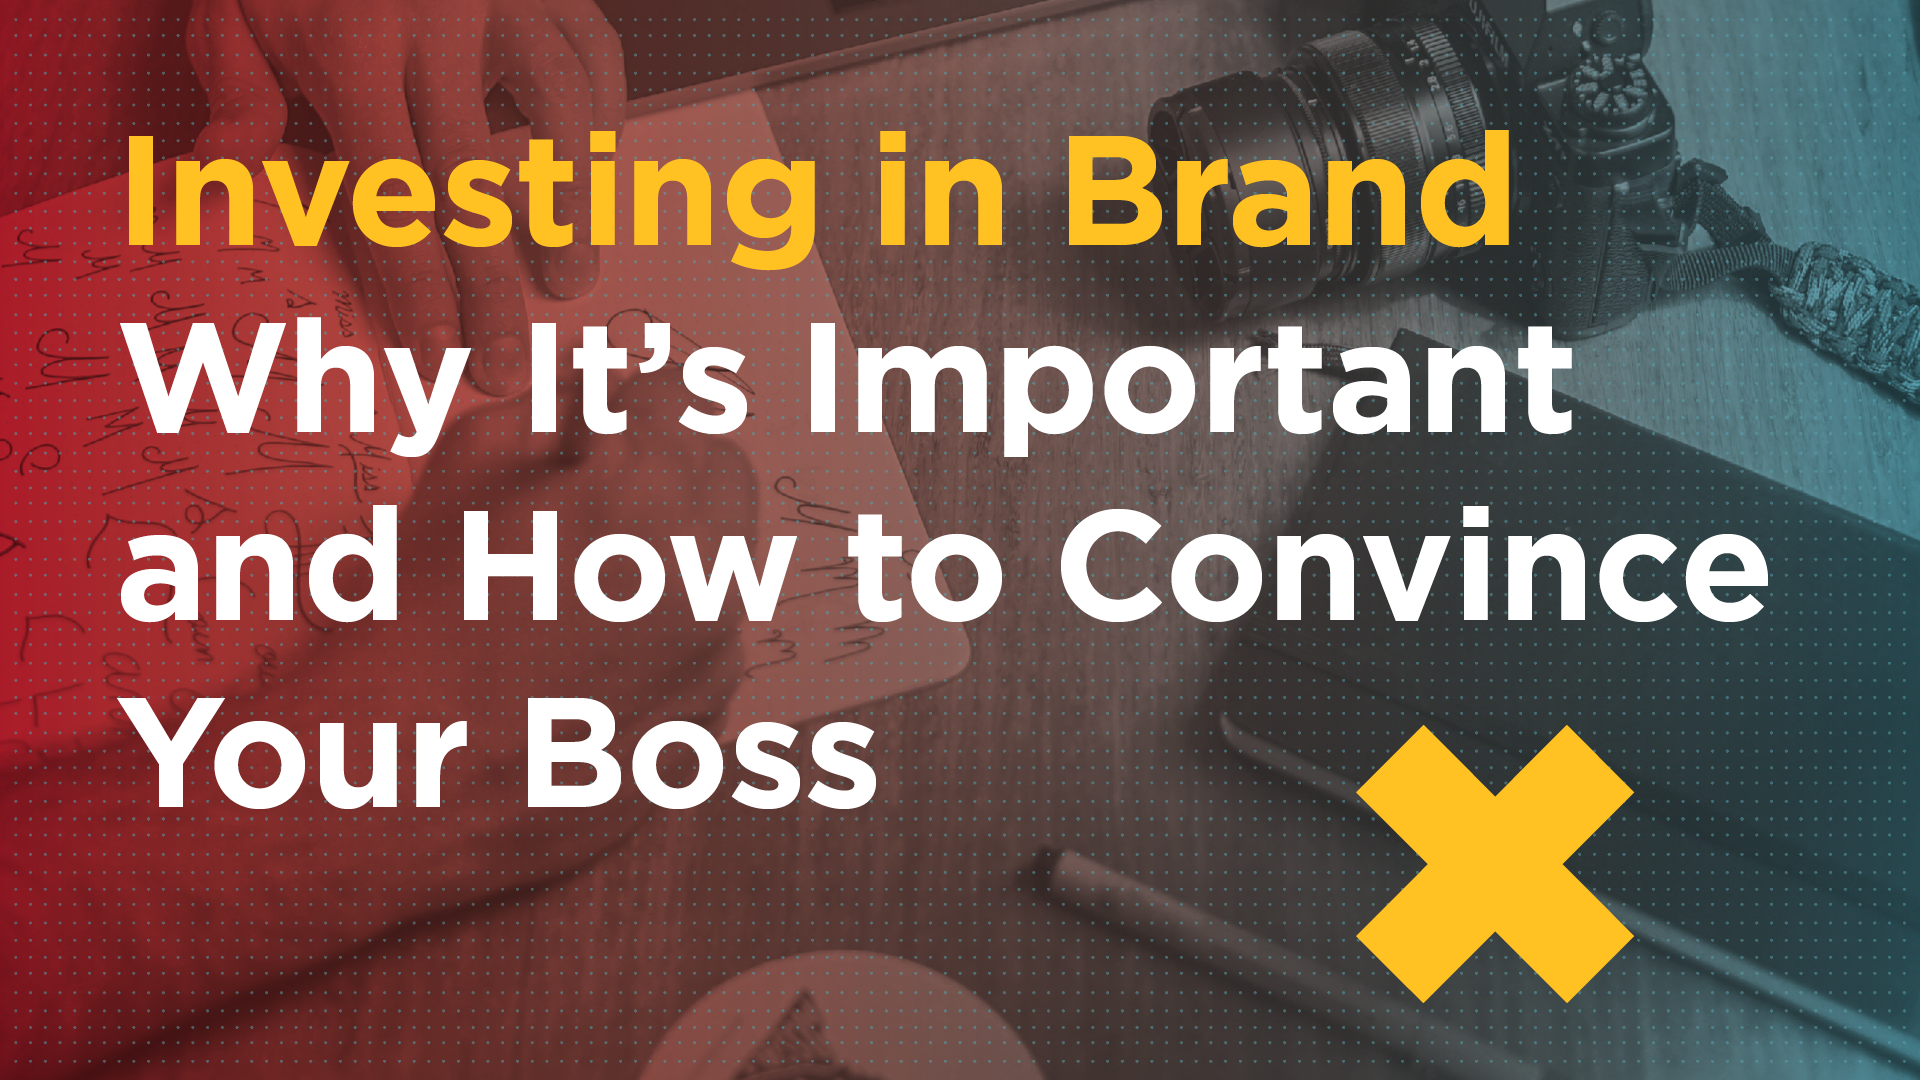 Investing in Brand: Why It's Important and How to Convince Your Boss Featured Image